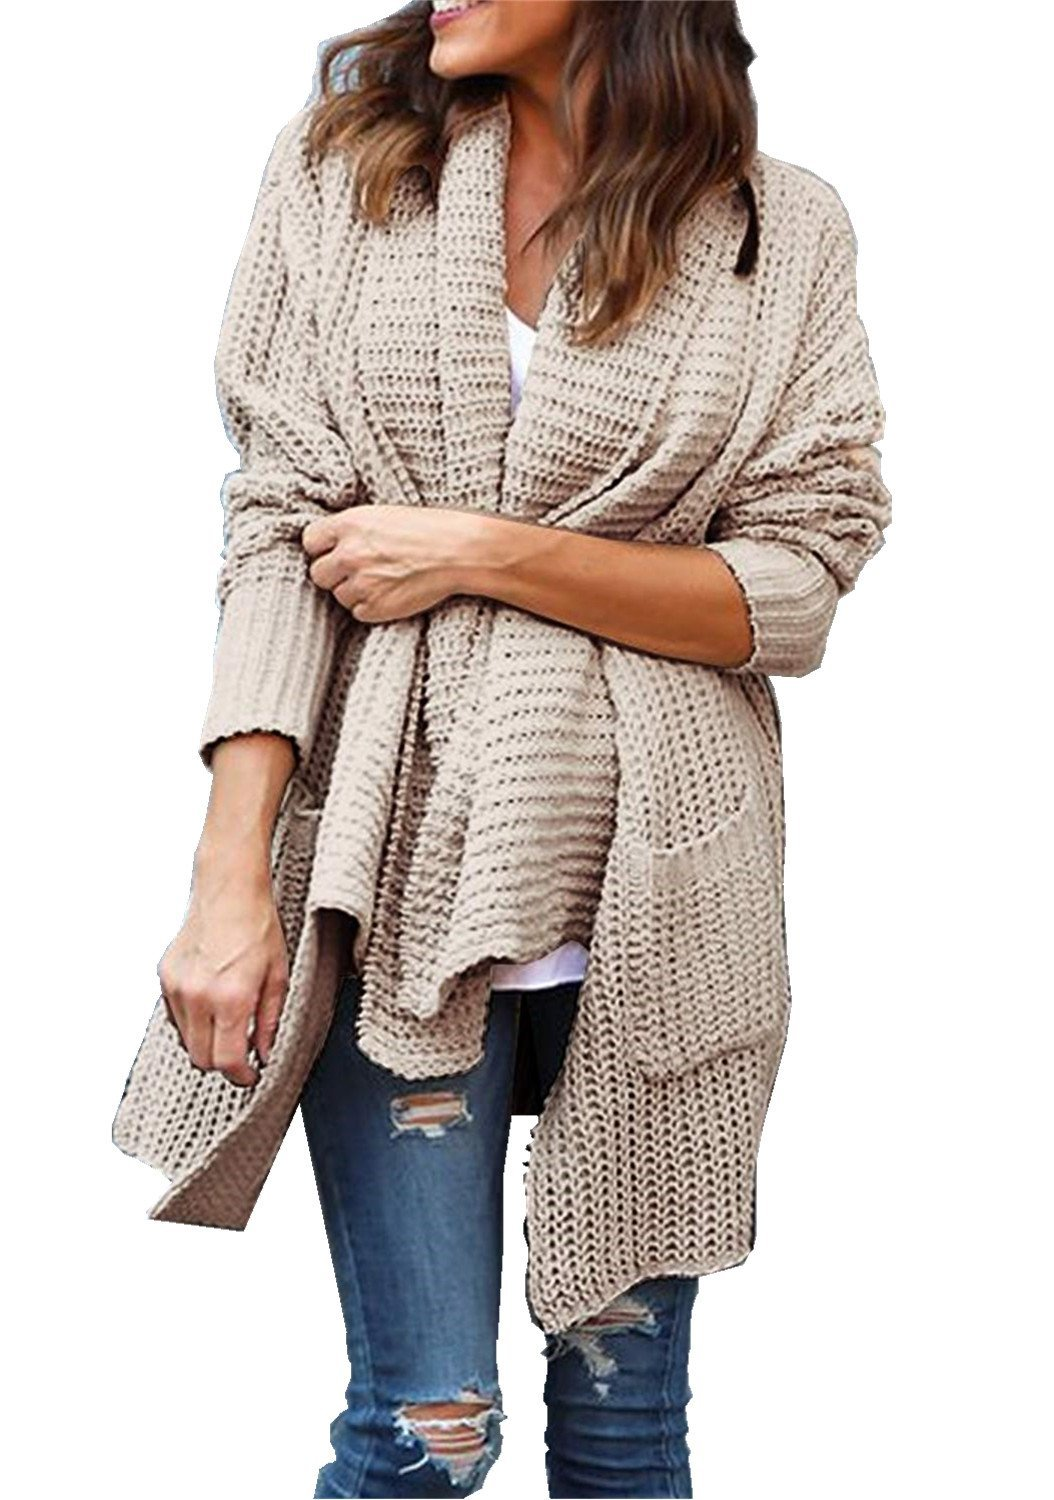 FIRENGOLI Womens Open Front Chunky Sweater Cardigan Long Sleeve Knit Coat with Pocket Khaki M